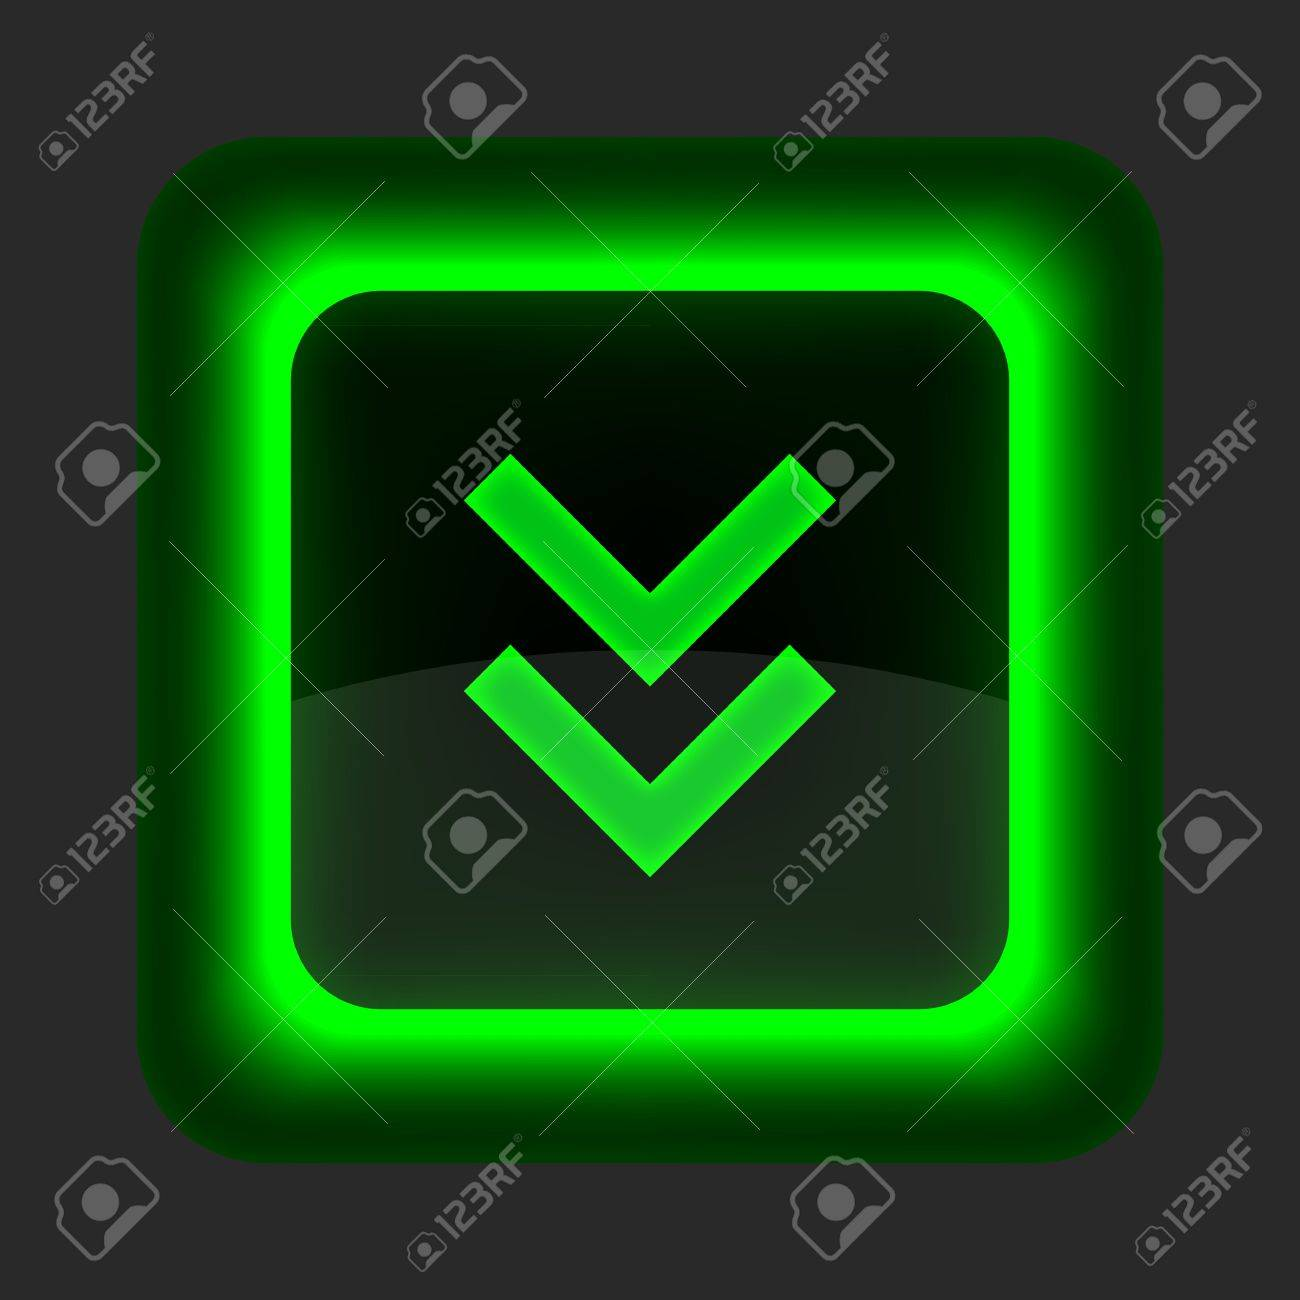 Green glossy internet button with arrow download symbol. Rounded square shape icon on gray background Stock Vector - 14698756